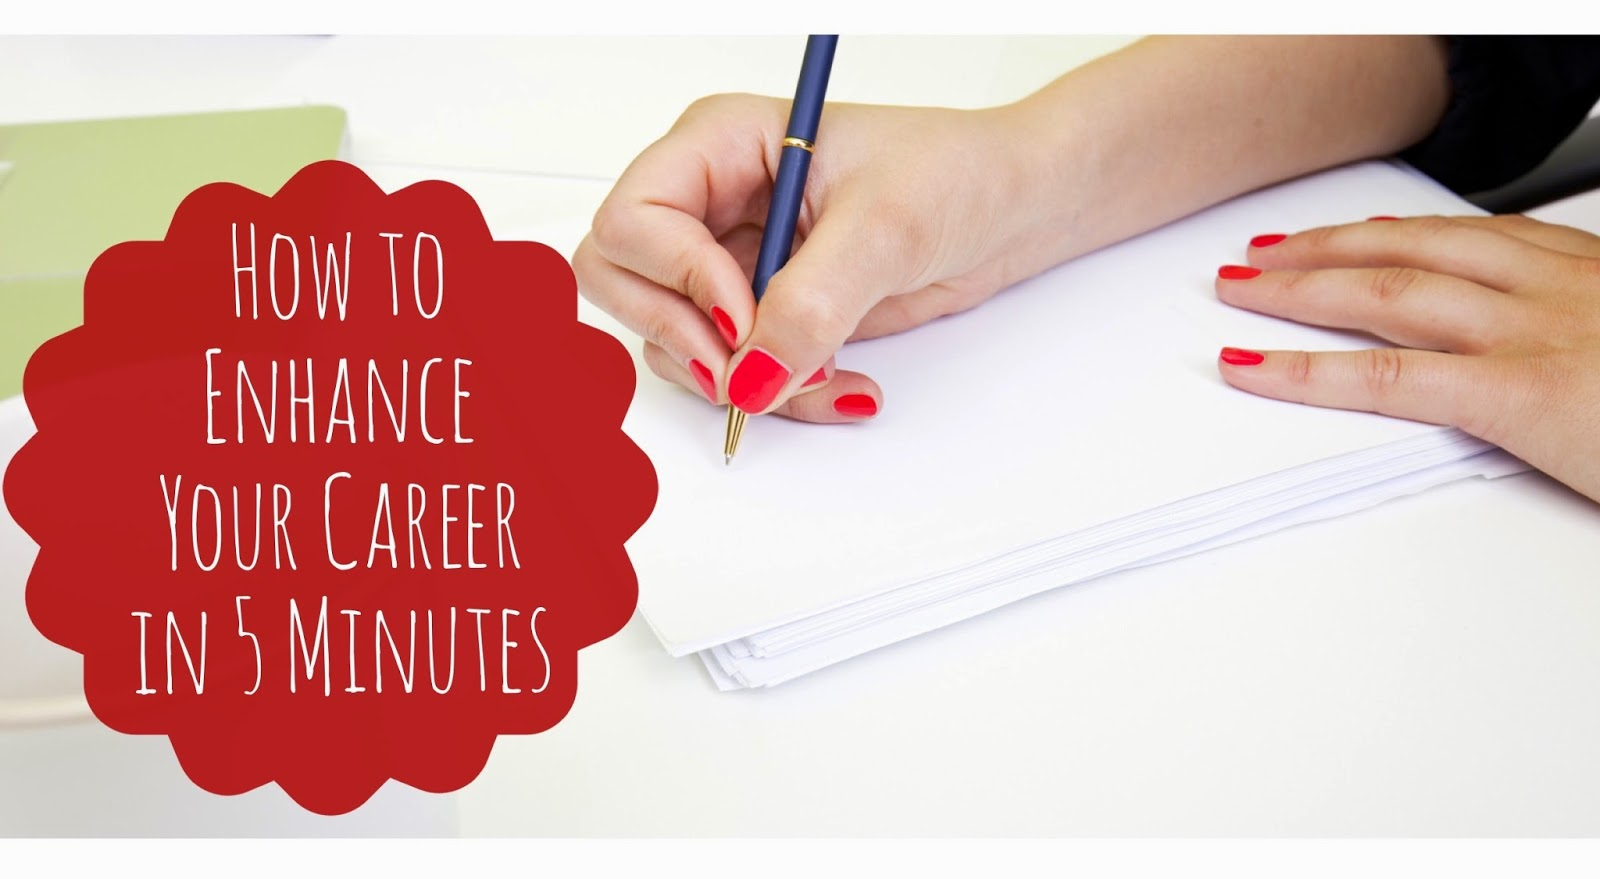 How to Enhance Your Career in 5 Minutes